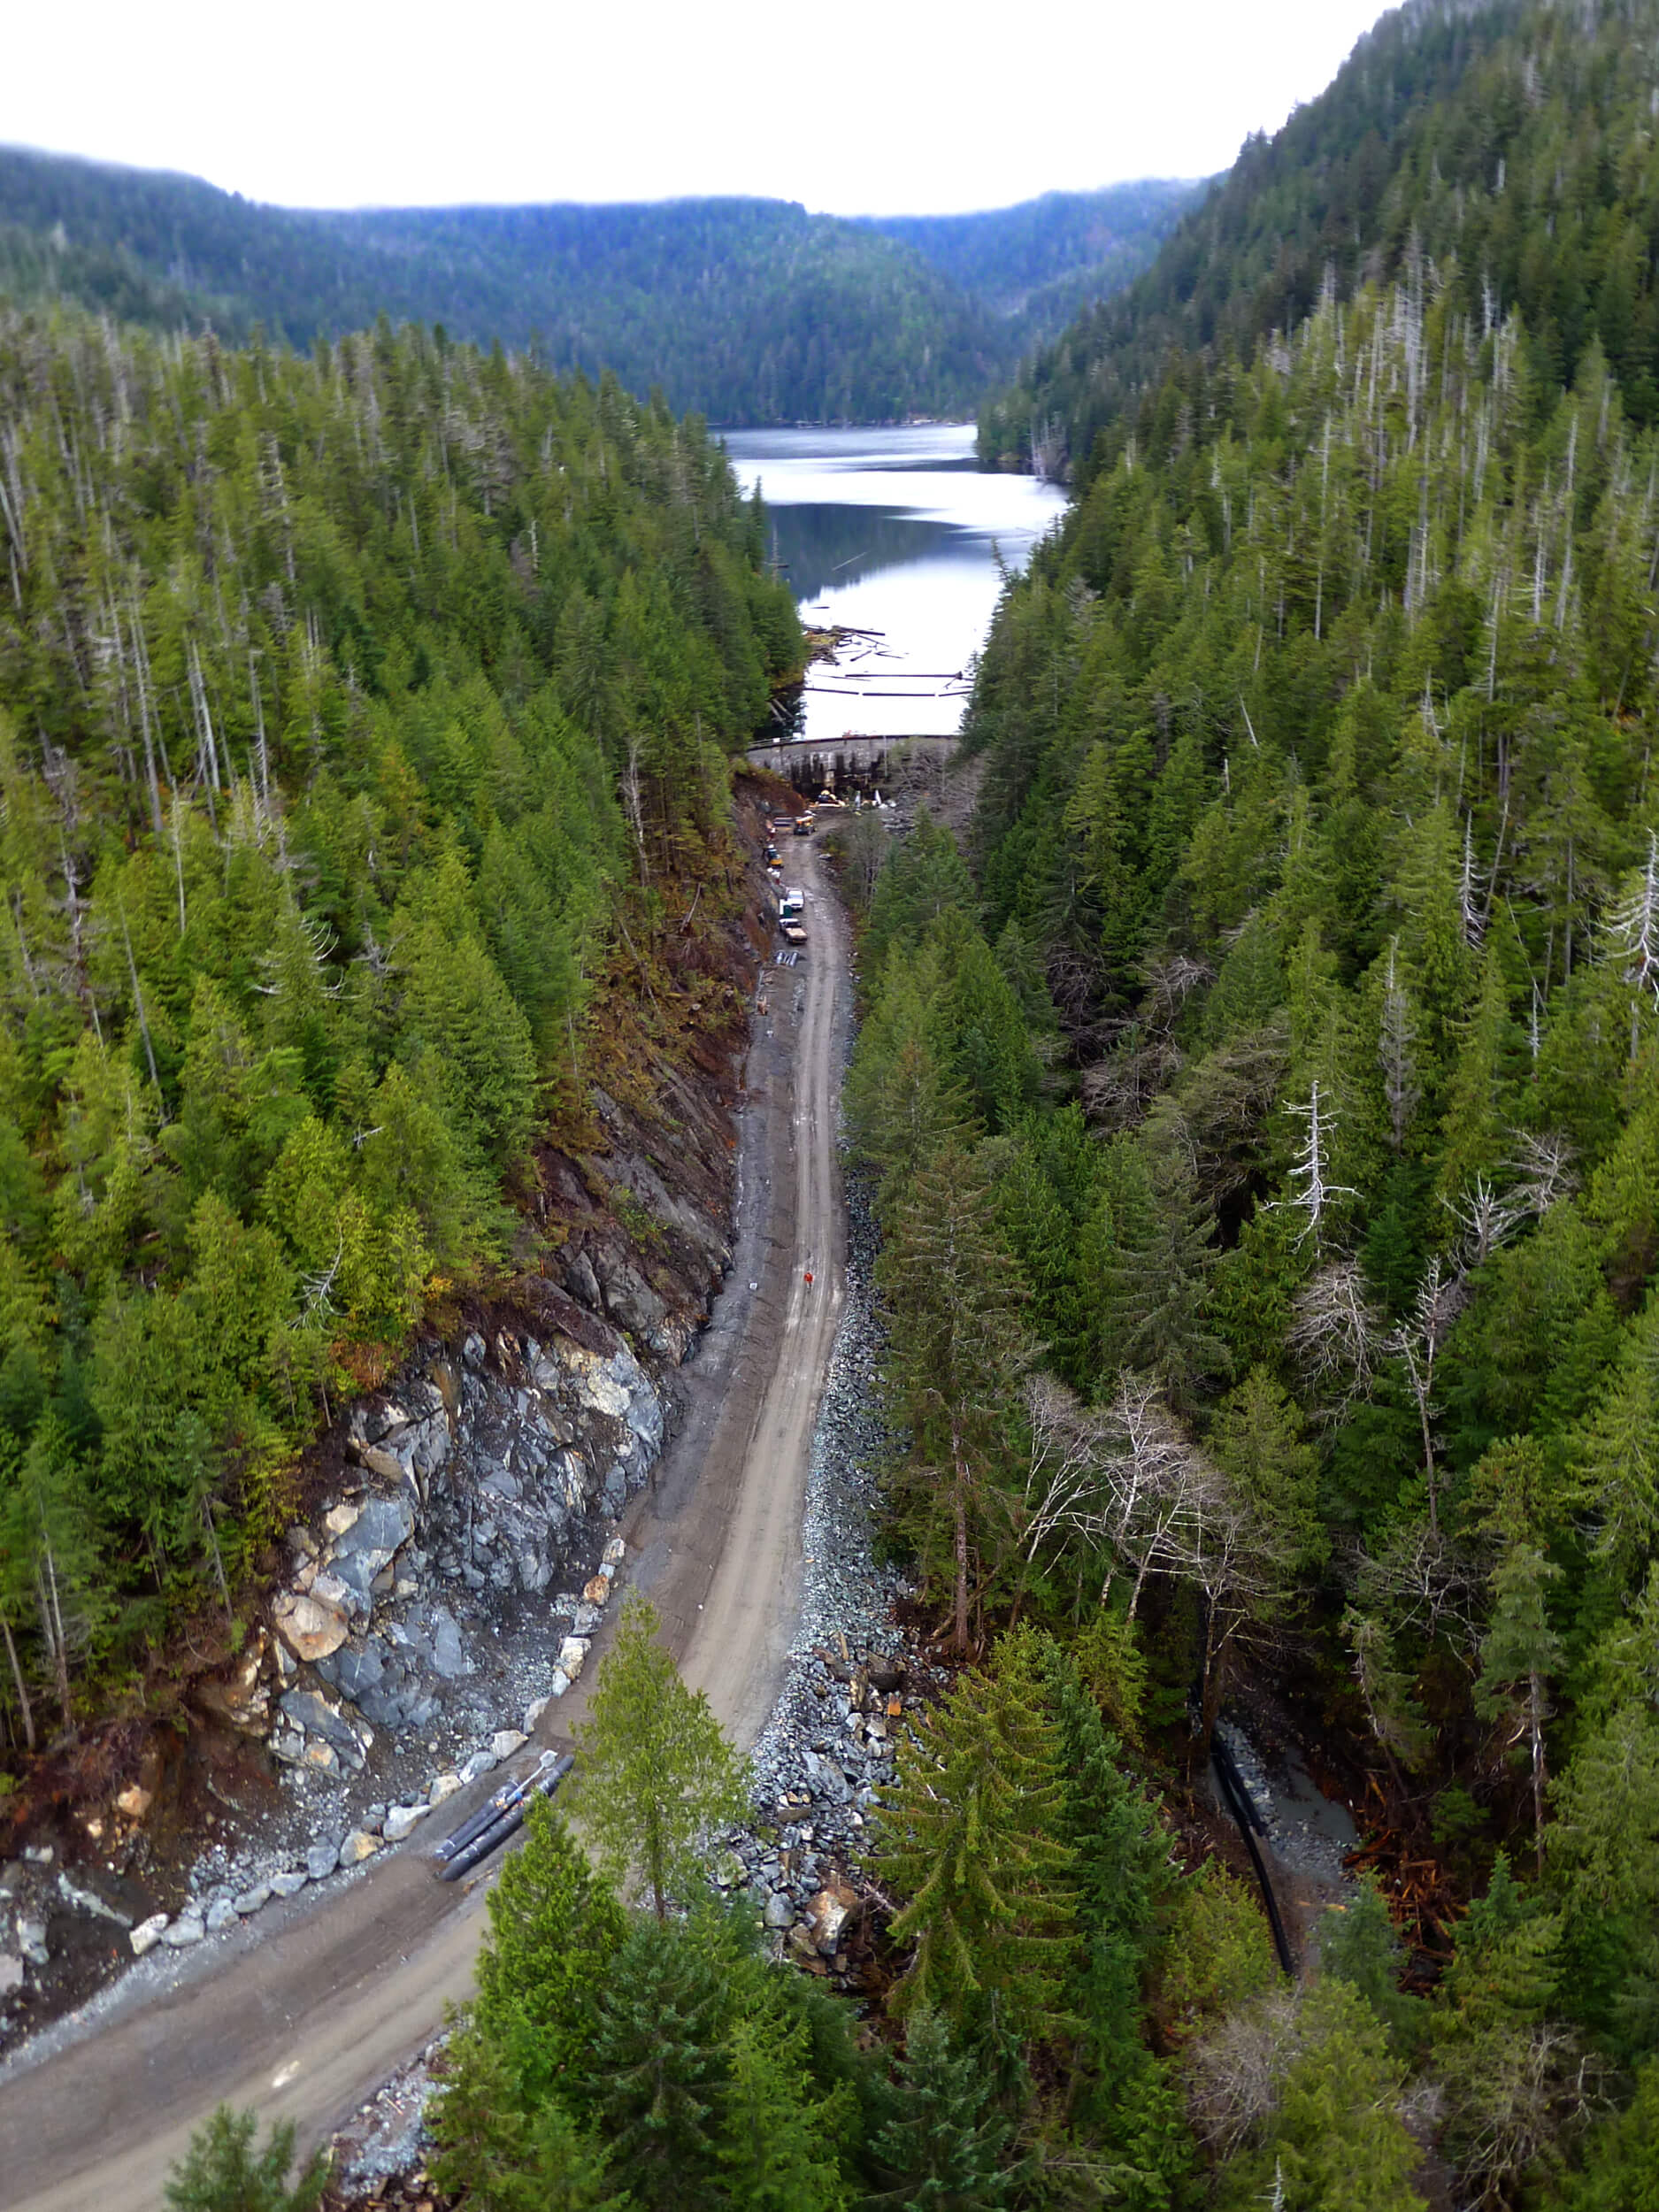 Expand Road to Whitman Lake Hydroelectric